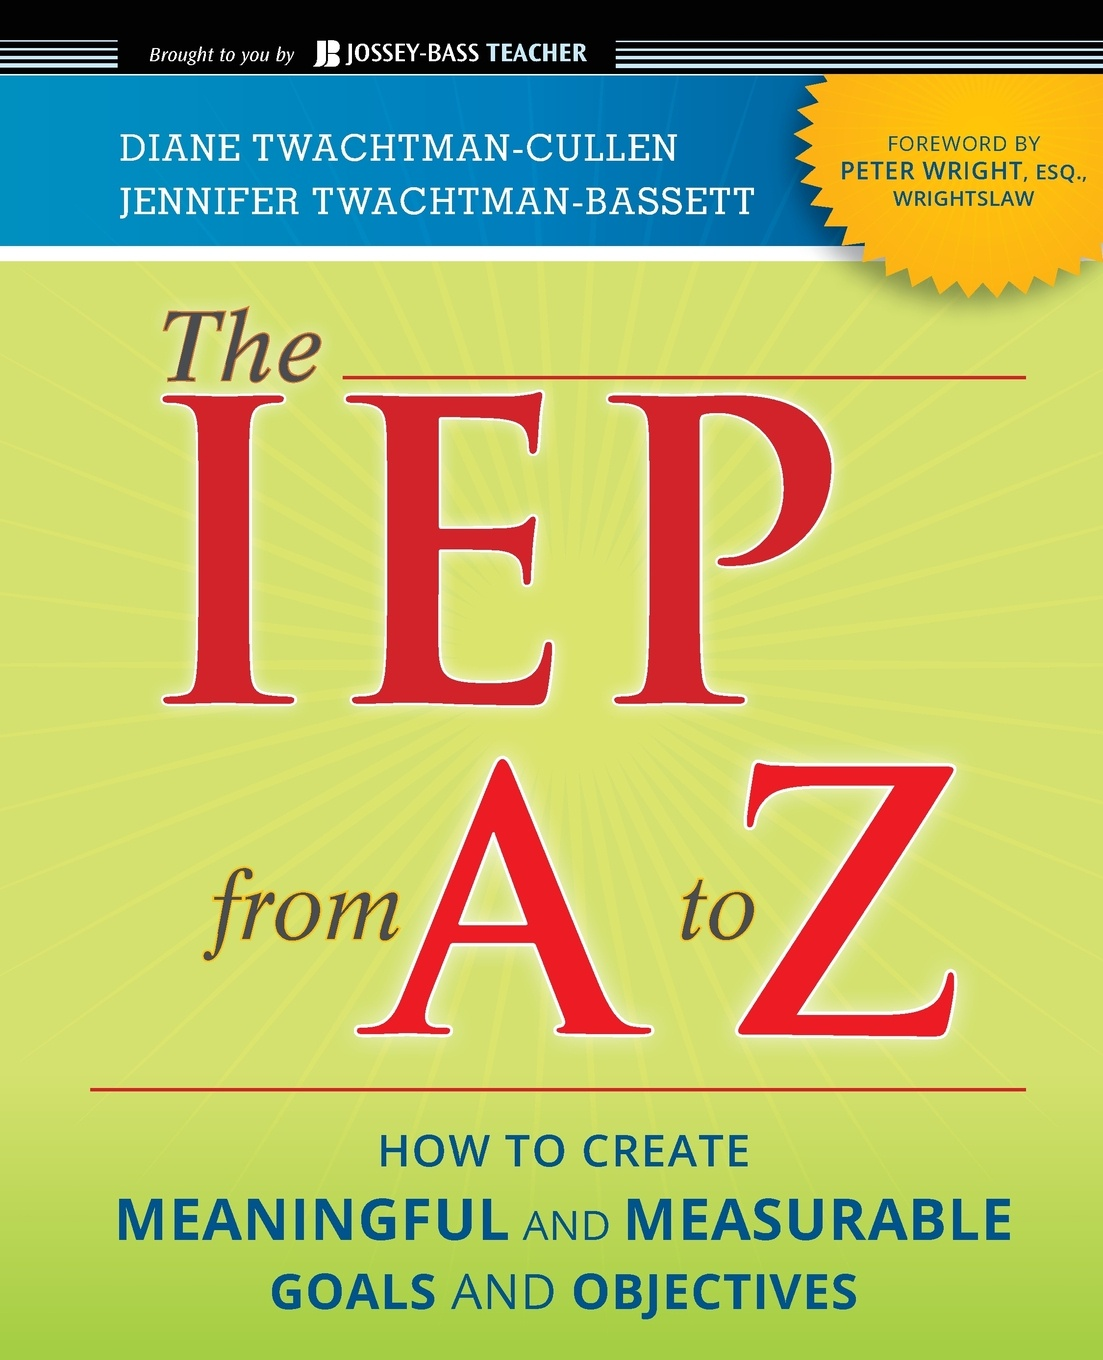 Twachtman-Culle, Twachtman-Basse, Wright The IEP From A to Z недорого